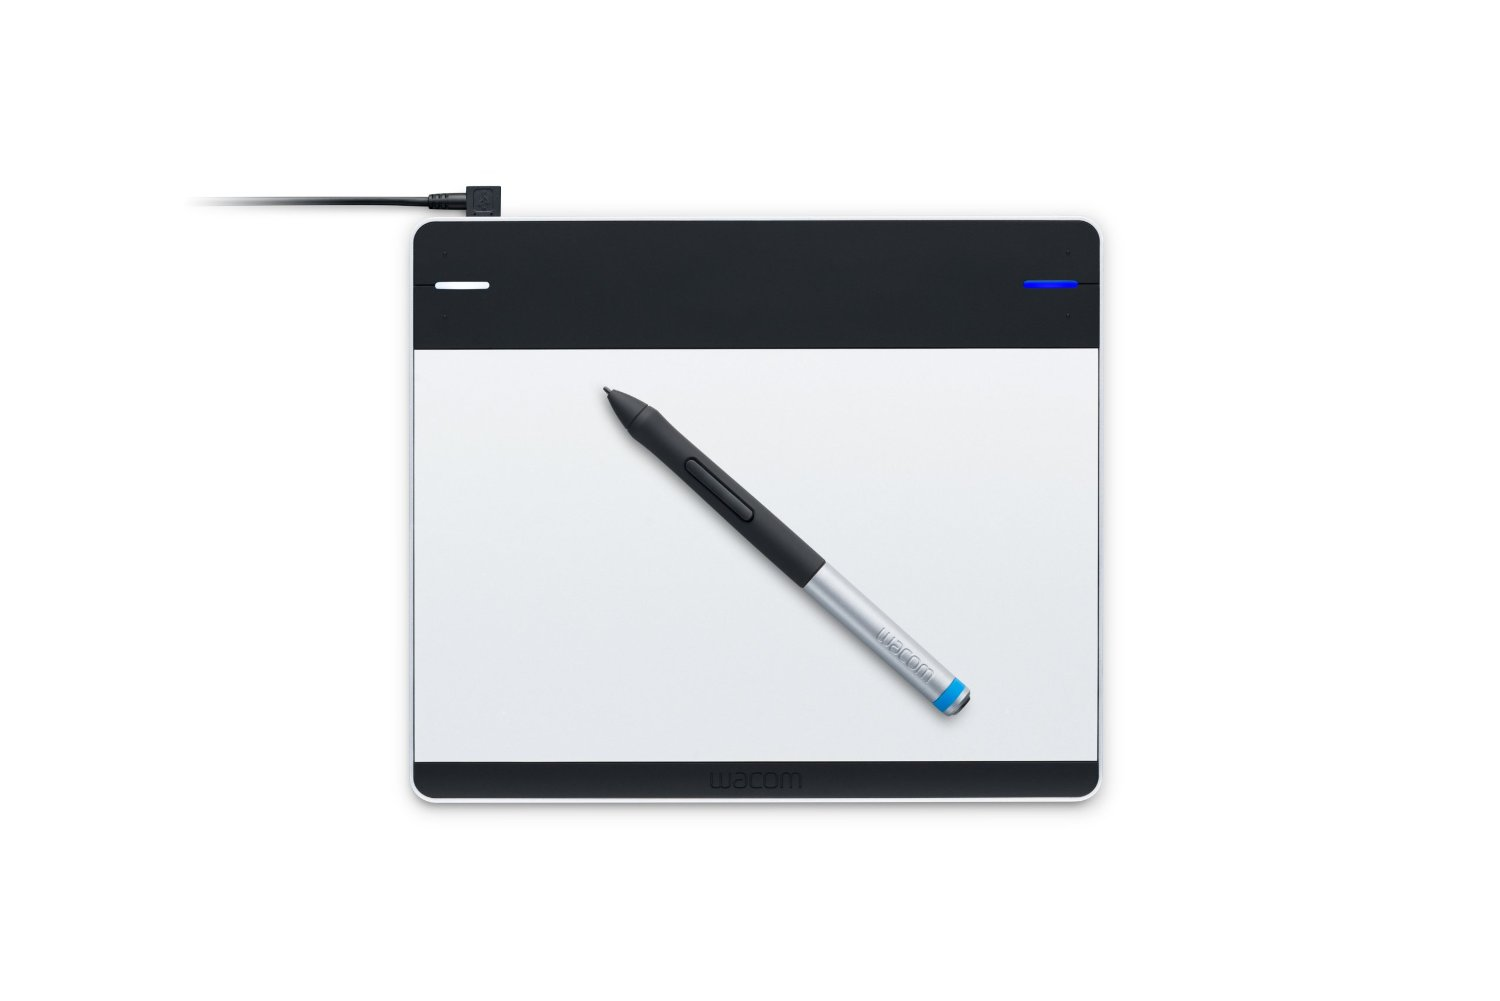 Wacom Ctl 480 Driver For Mac And Windows Download Intuos Draw 490 Wacom4drivercom Provides Complete Information About Software Pen Small Tablet Ctl480 To Make Installation